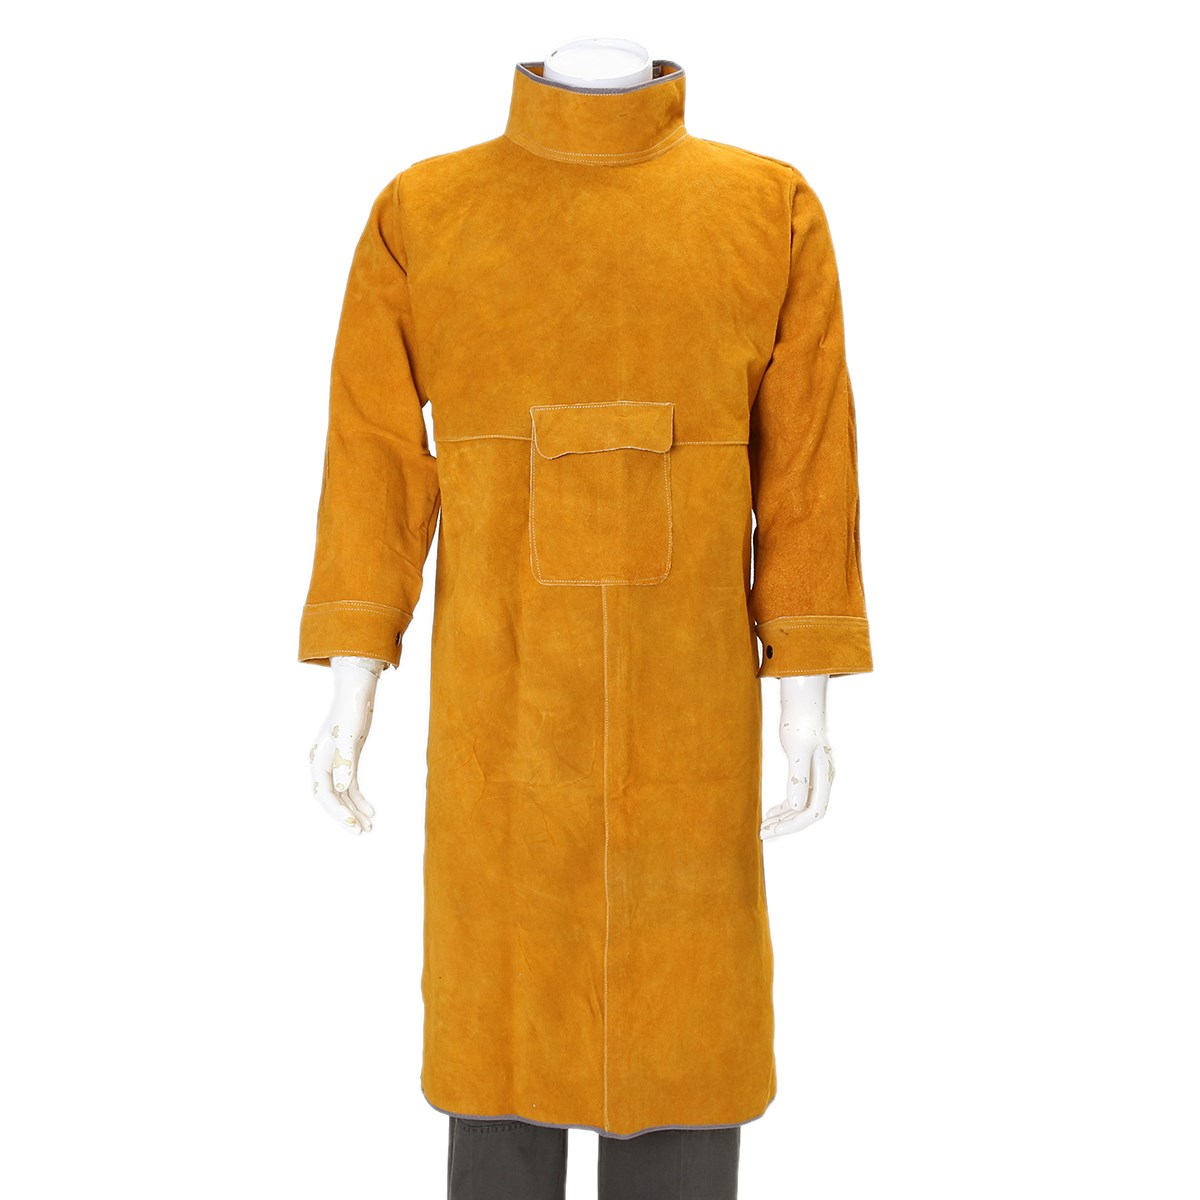 FGHGF Durable Leather Welding Long Coat Apron Protective Clothing Apparel Suit Welder Workplace Safety Clothing welder machine plasma cutter welder mask for welder machine